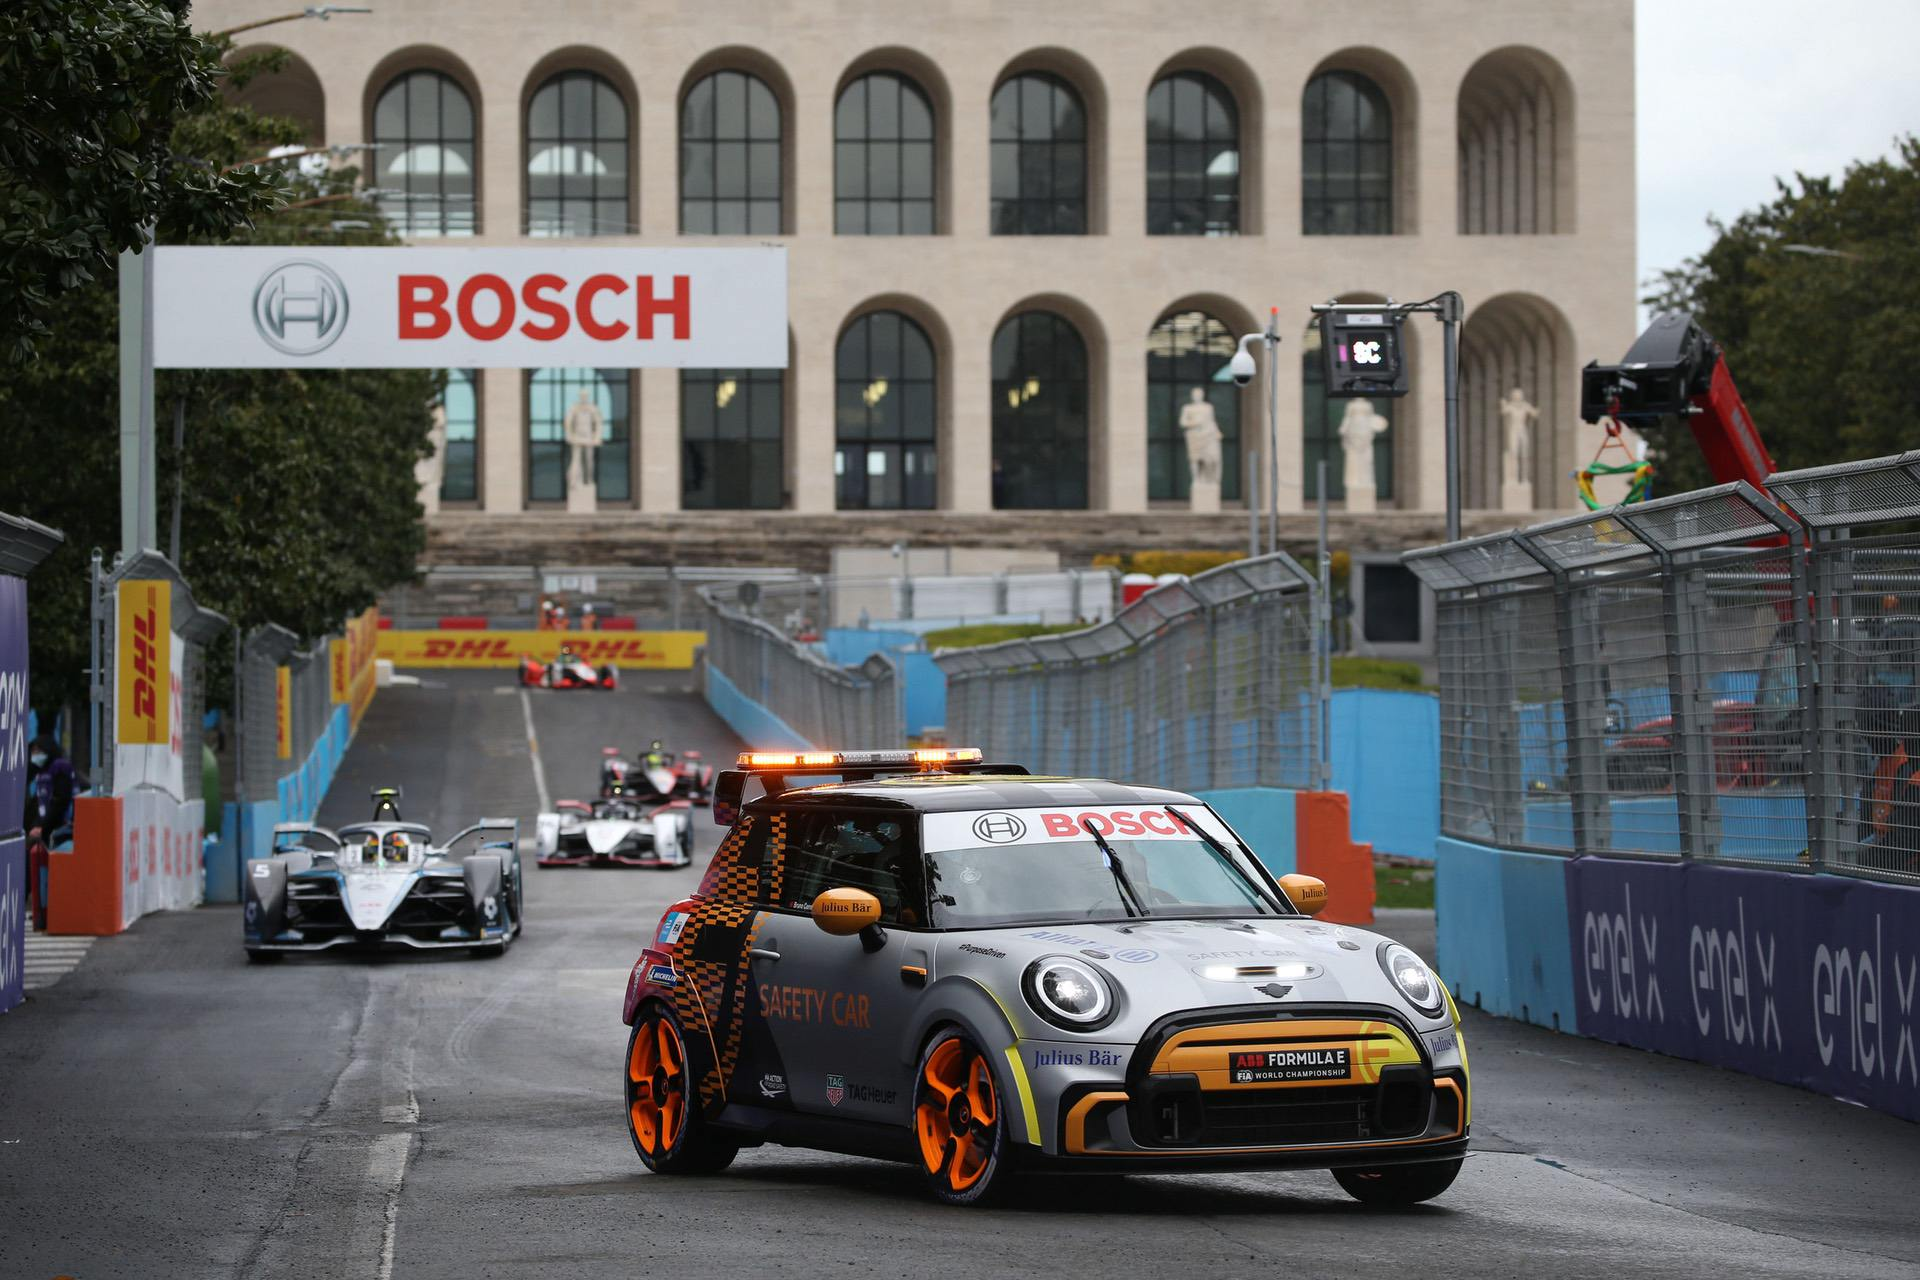 mini pacesetter safety car 09